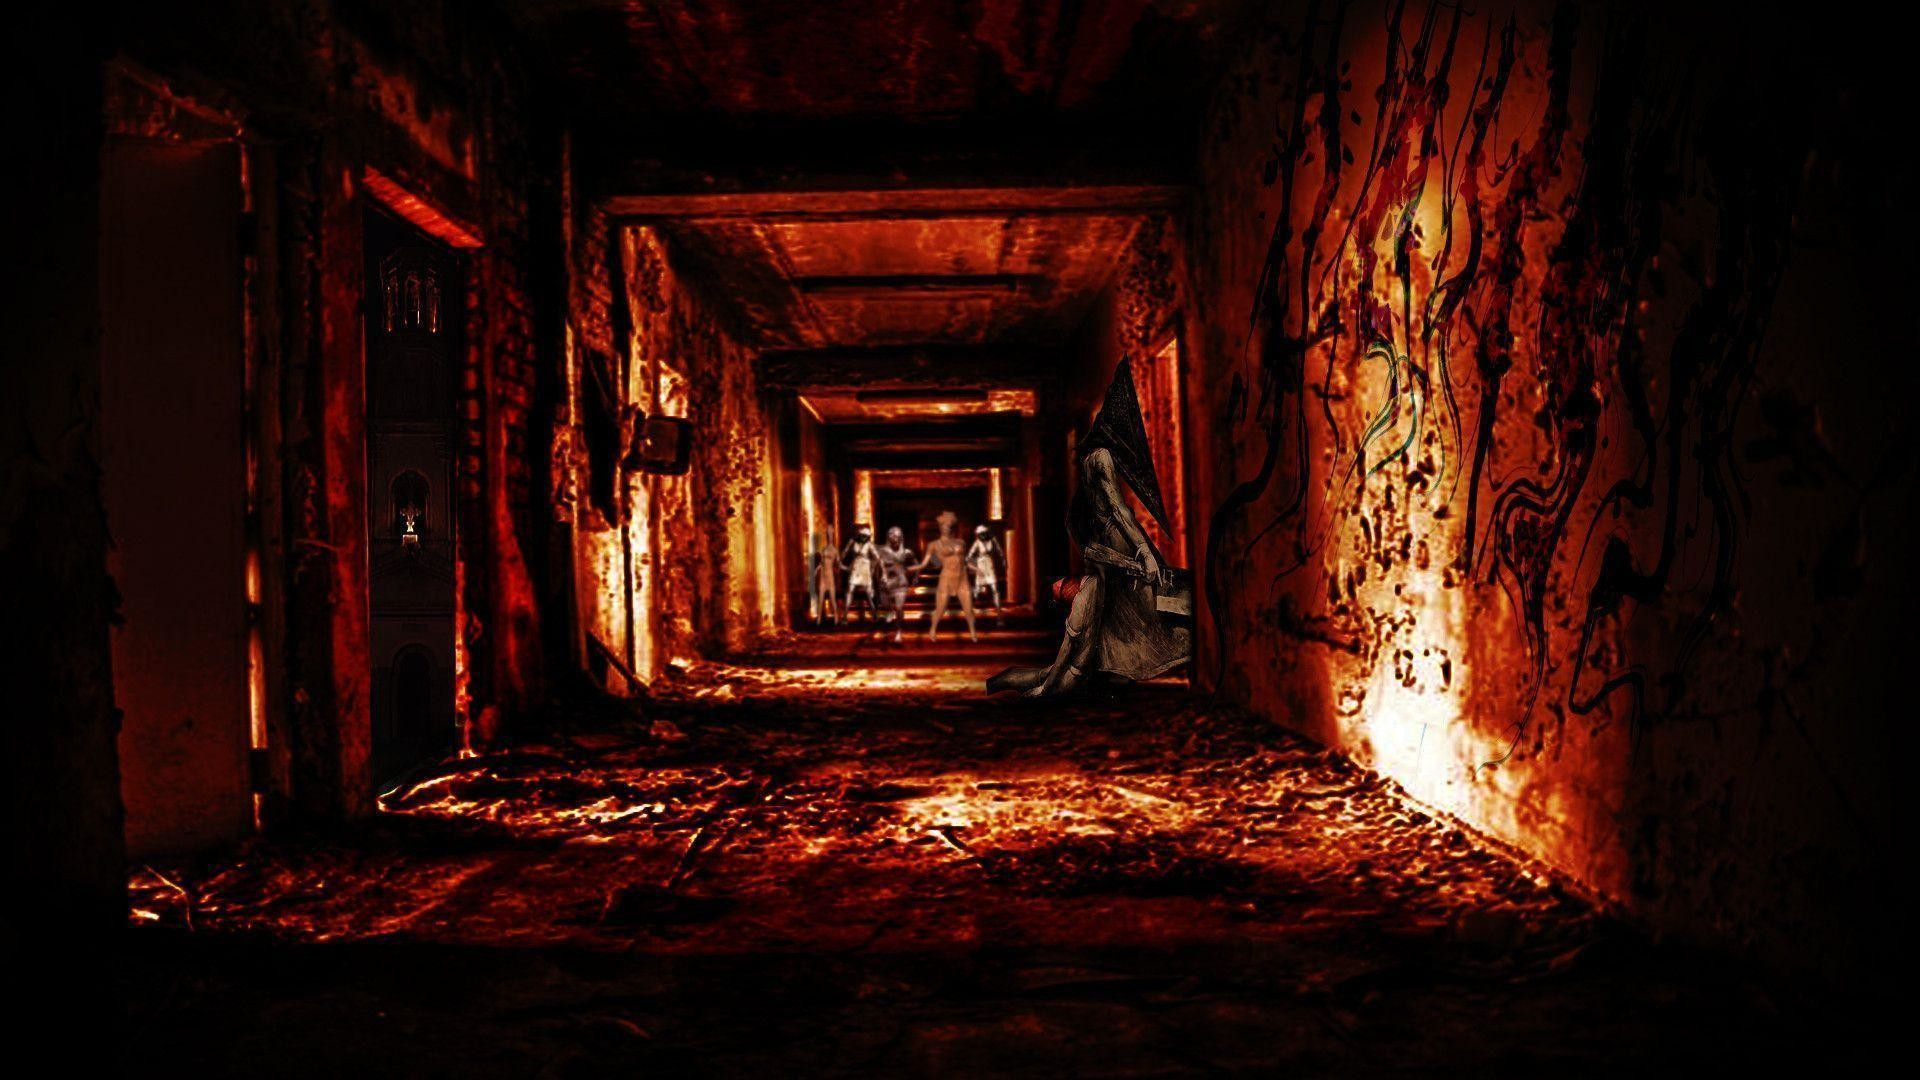 Silent Hill Backgrounds 73 Pictures